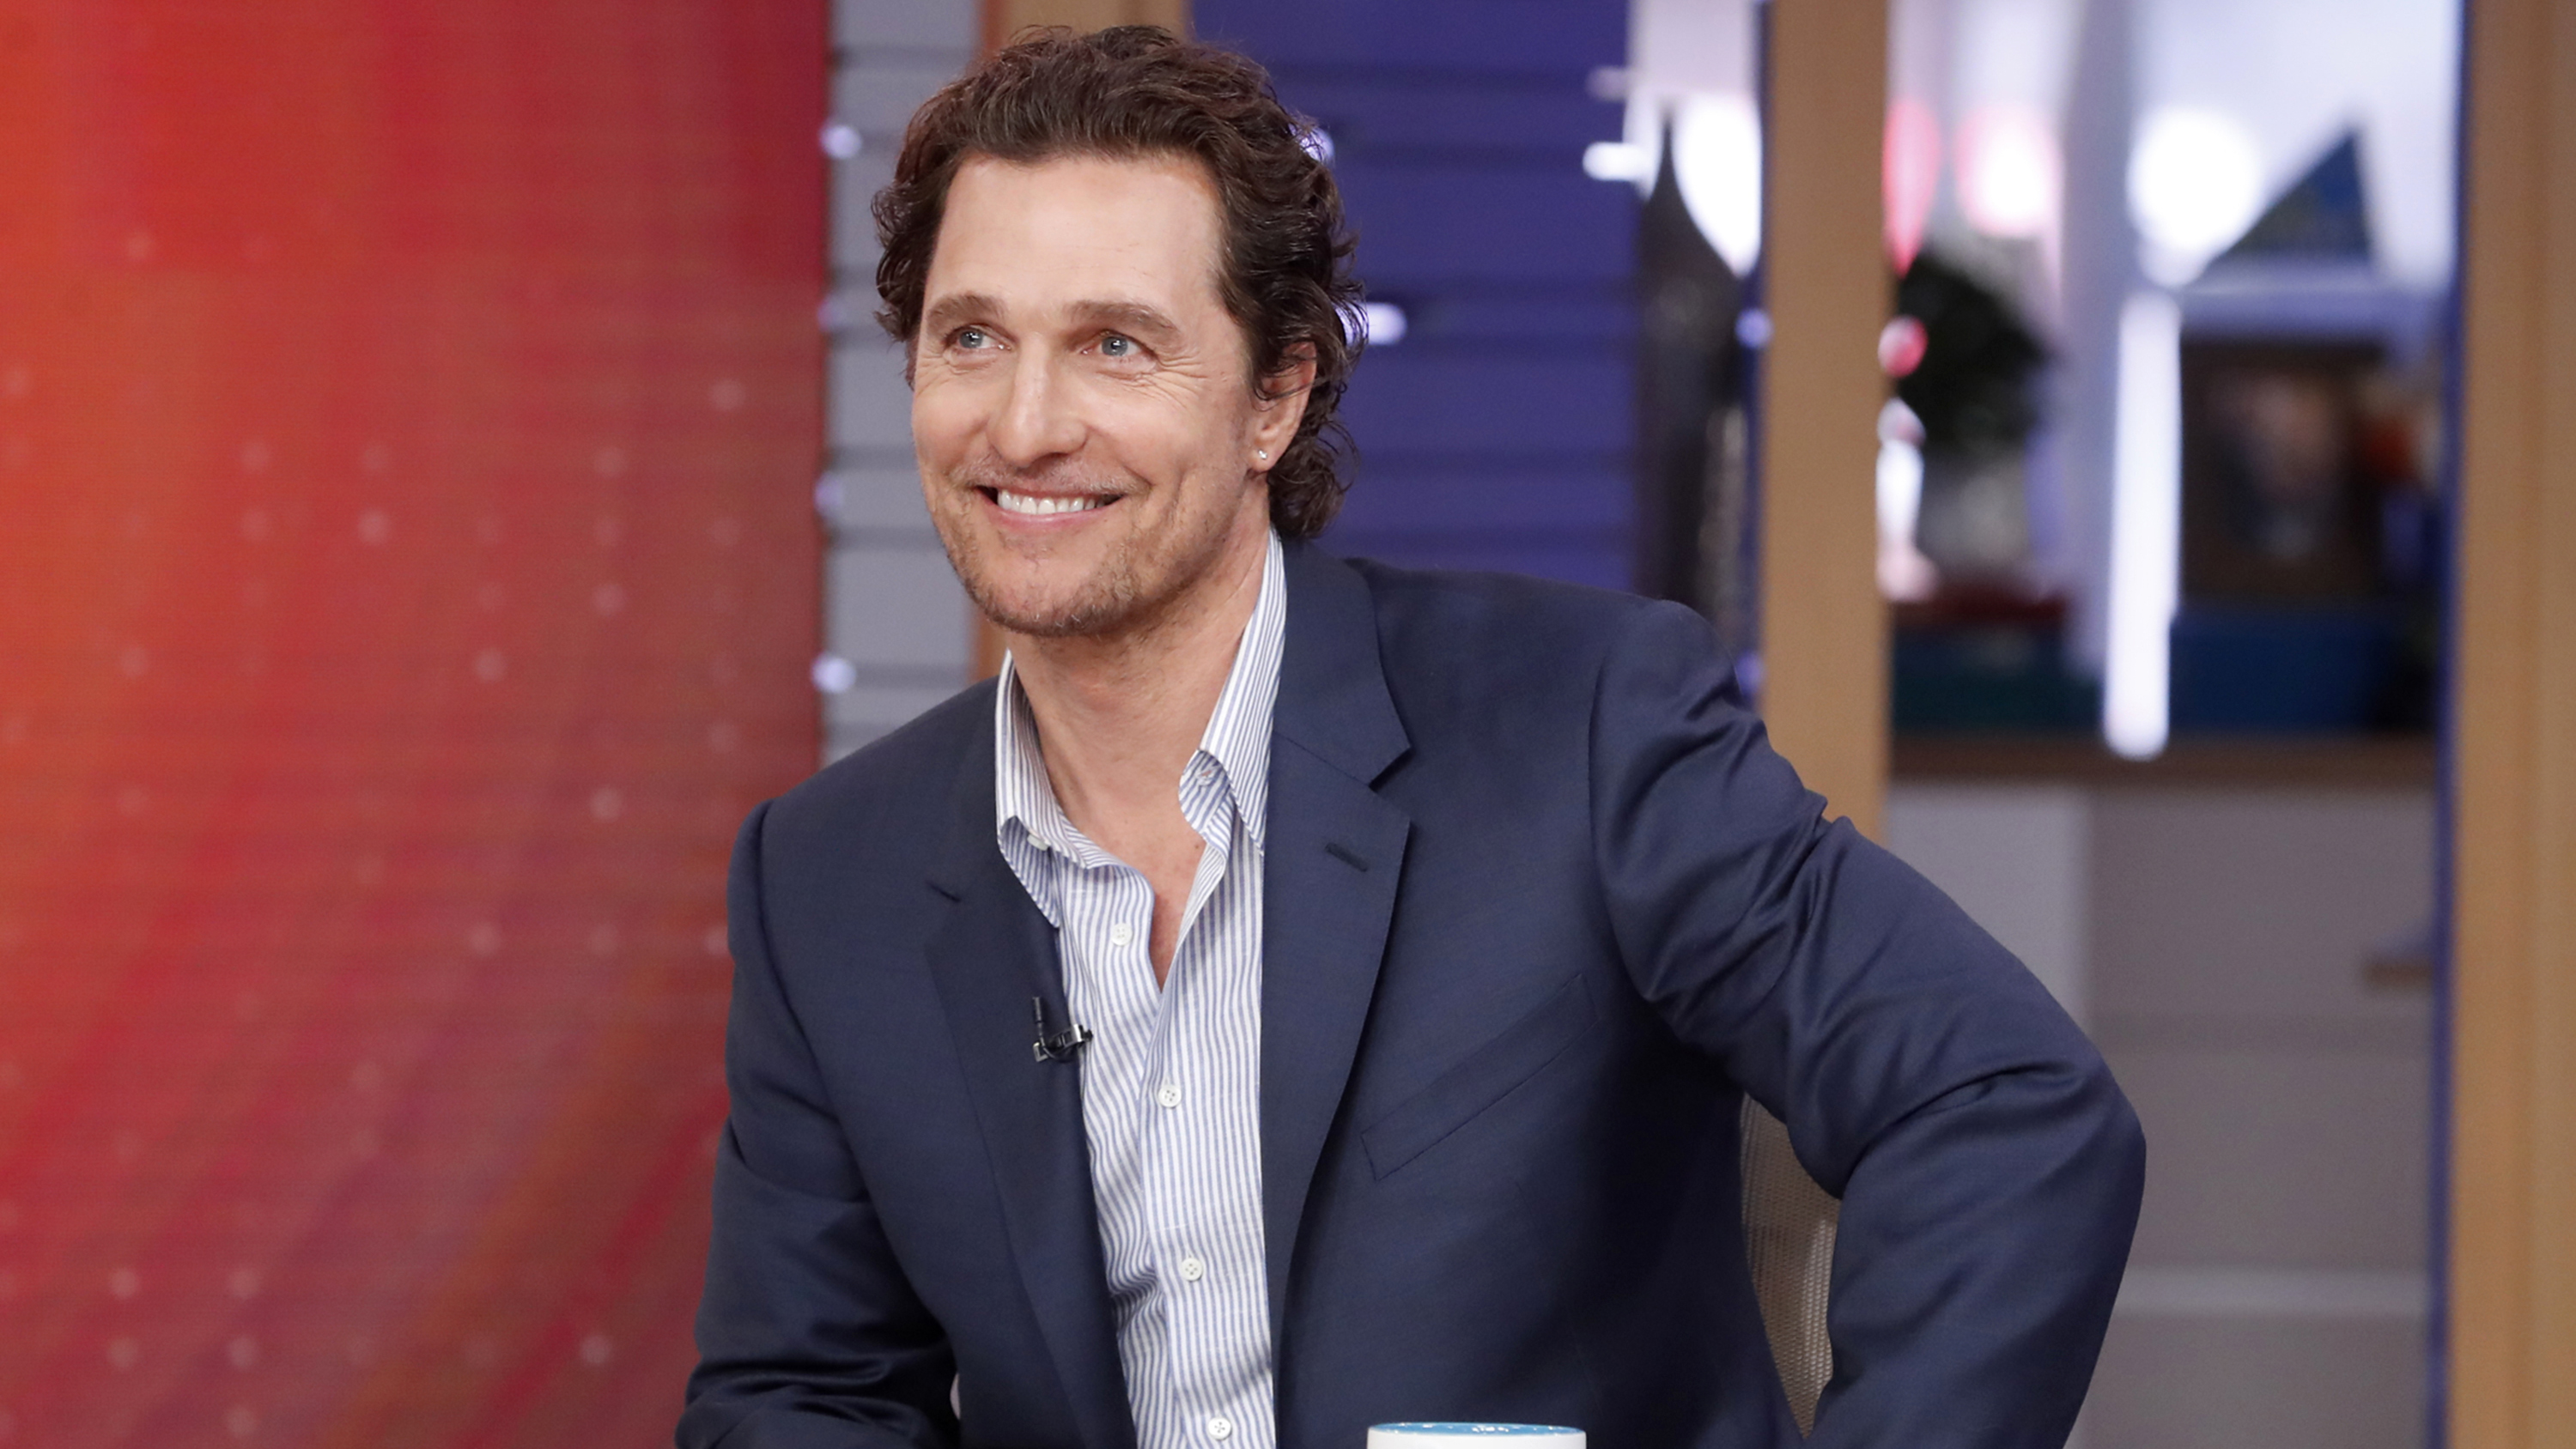 Seniors in Texas had a special guest for their virtual bingo game — Matthew McConaughey